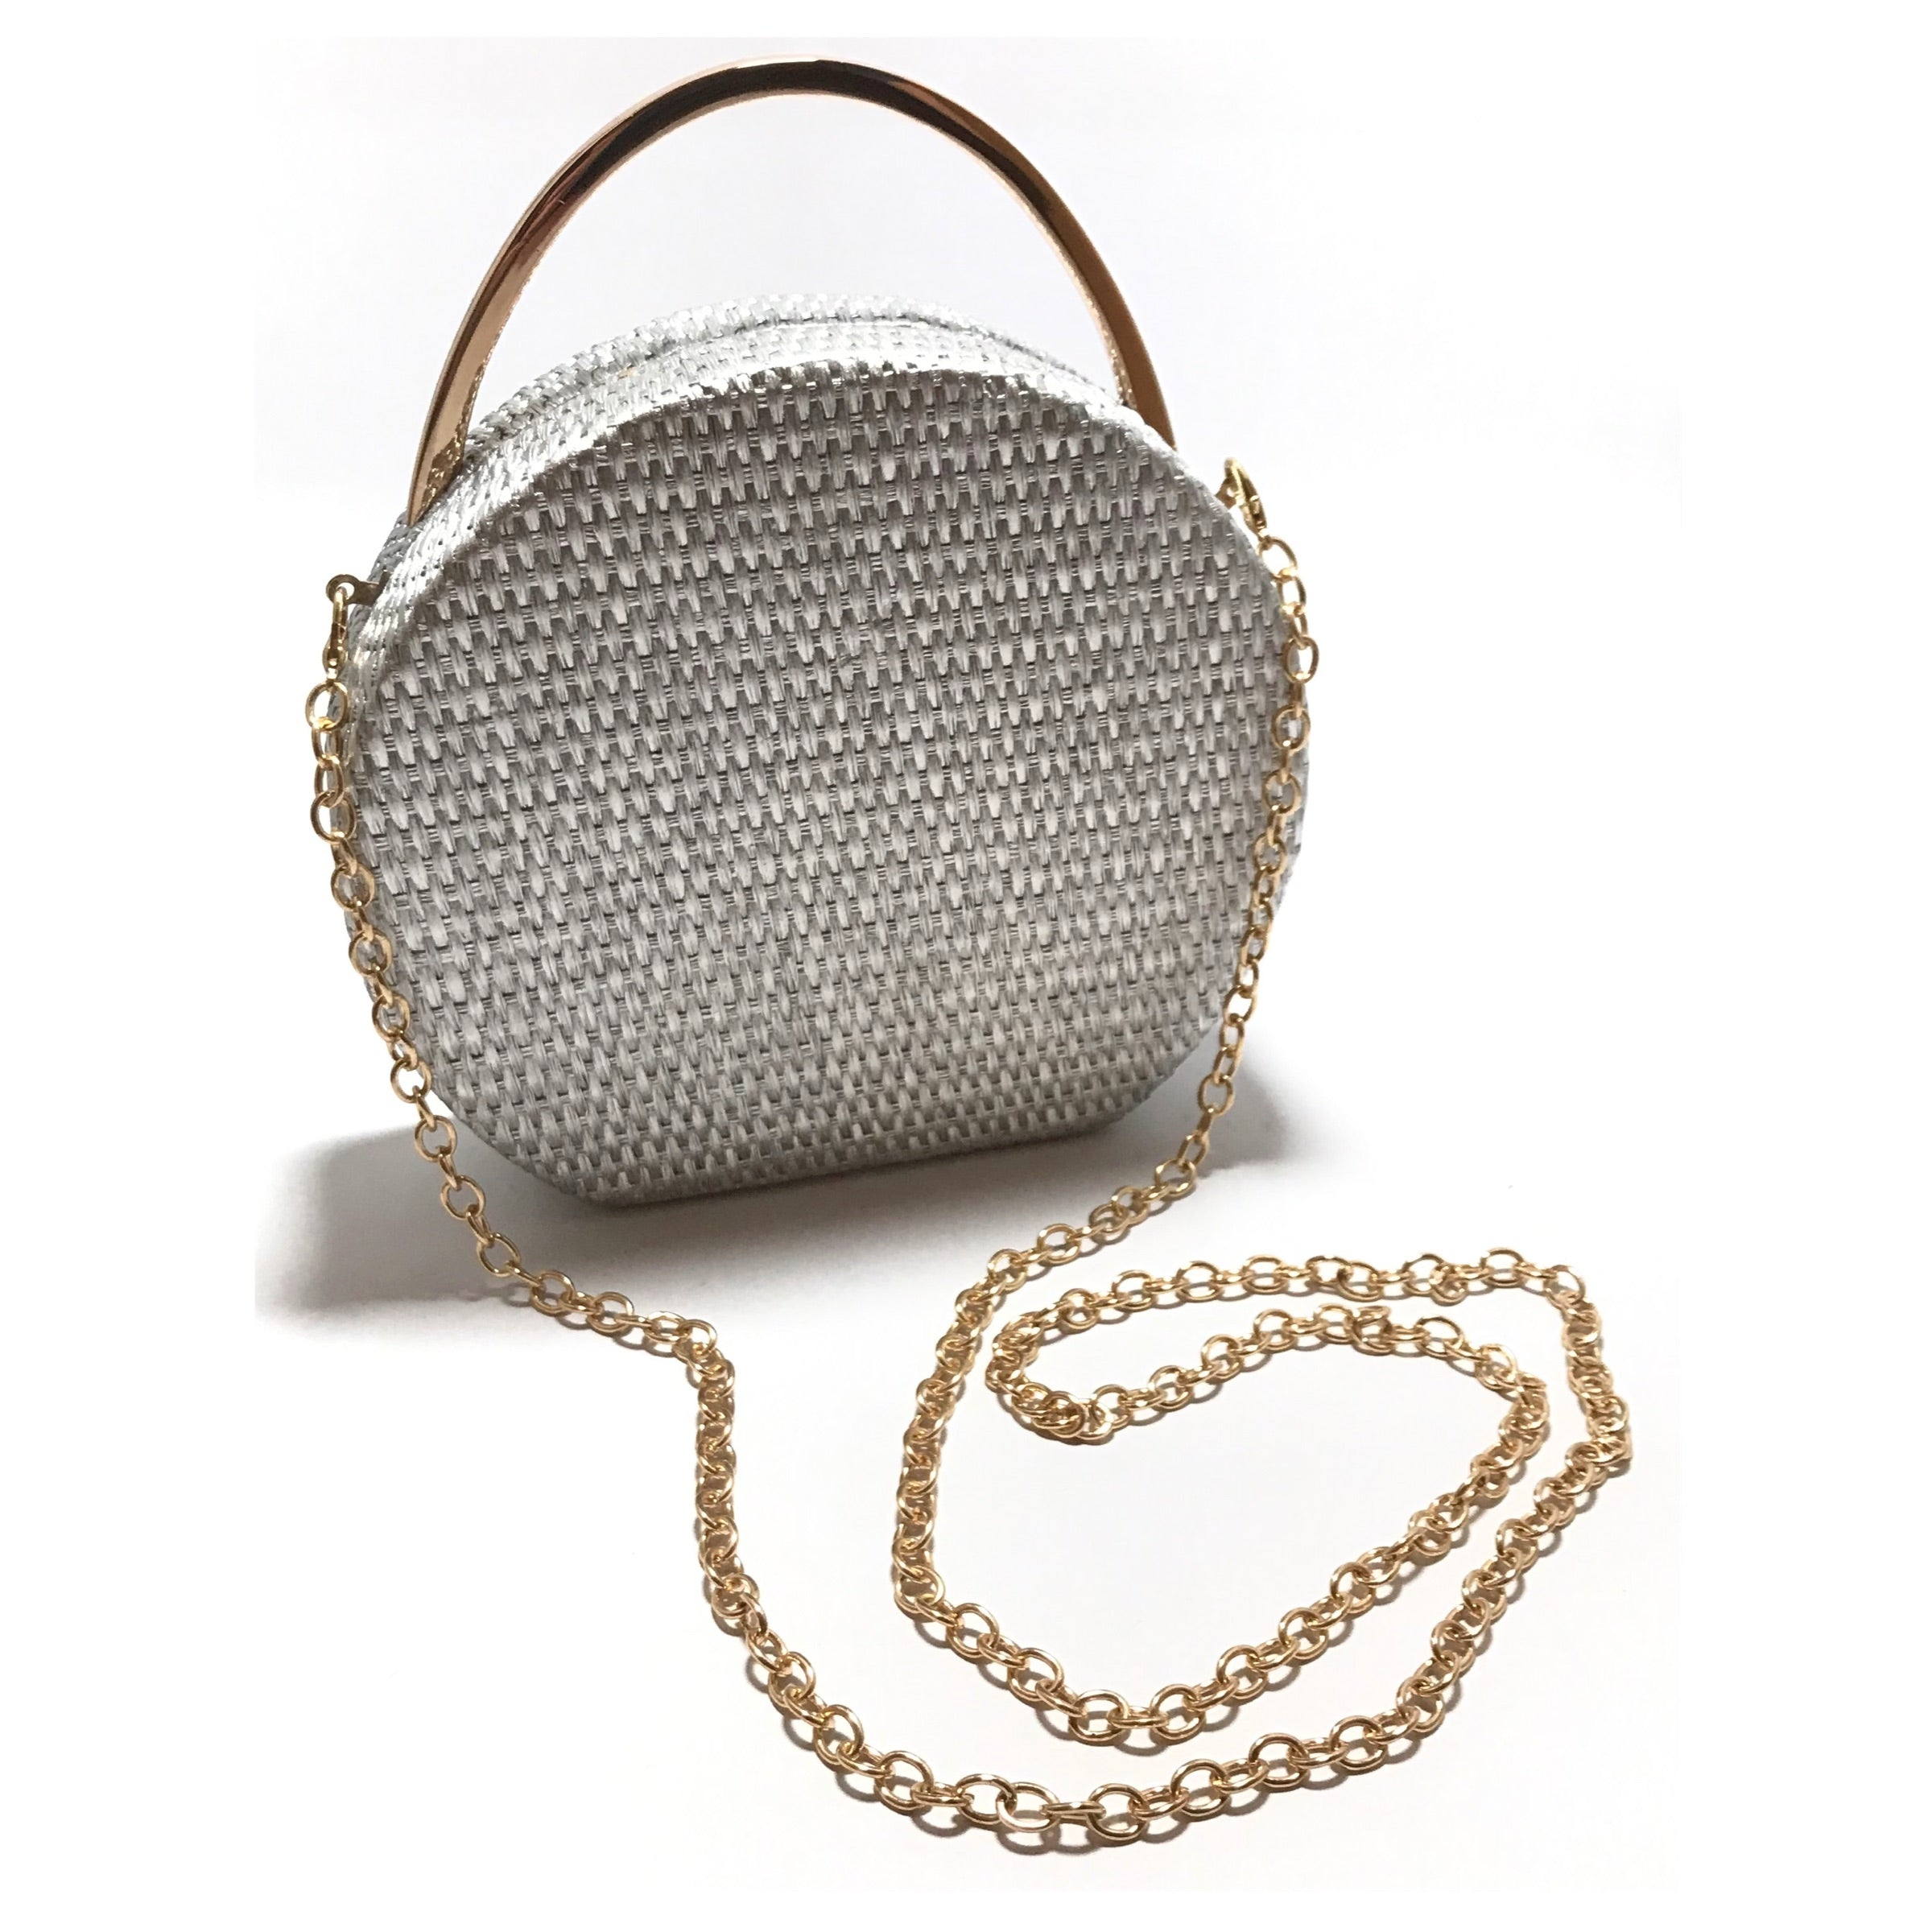 Sondra Roberts Basket Weave Texture Purse in silver